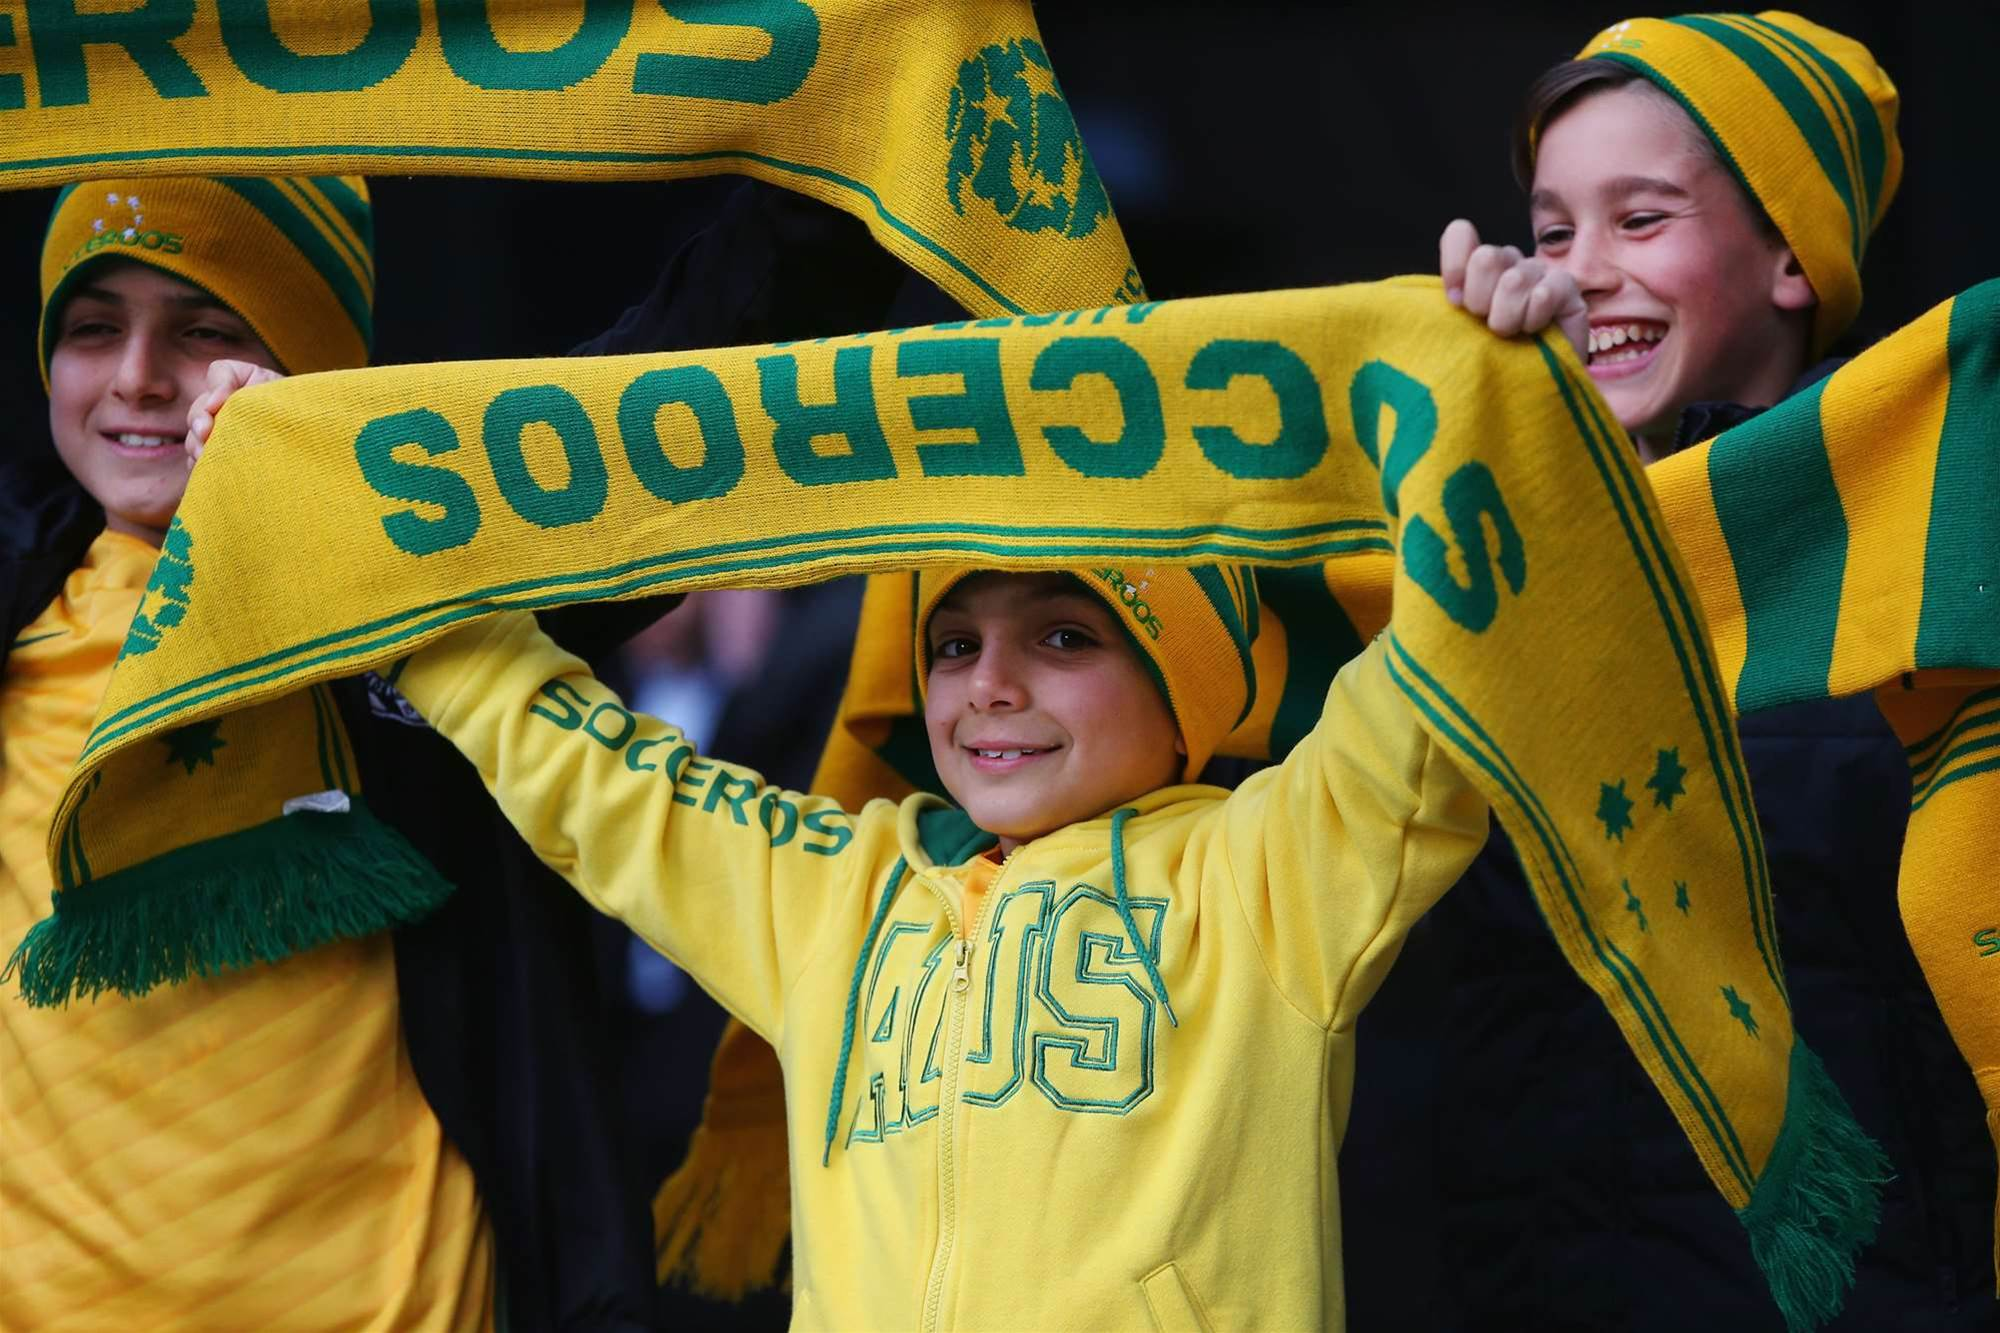 Socceroos v Japan fan pics